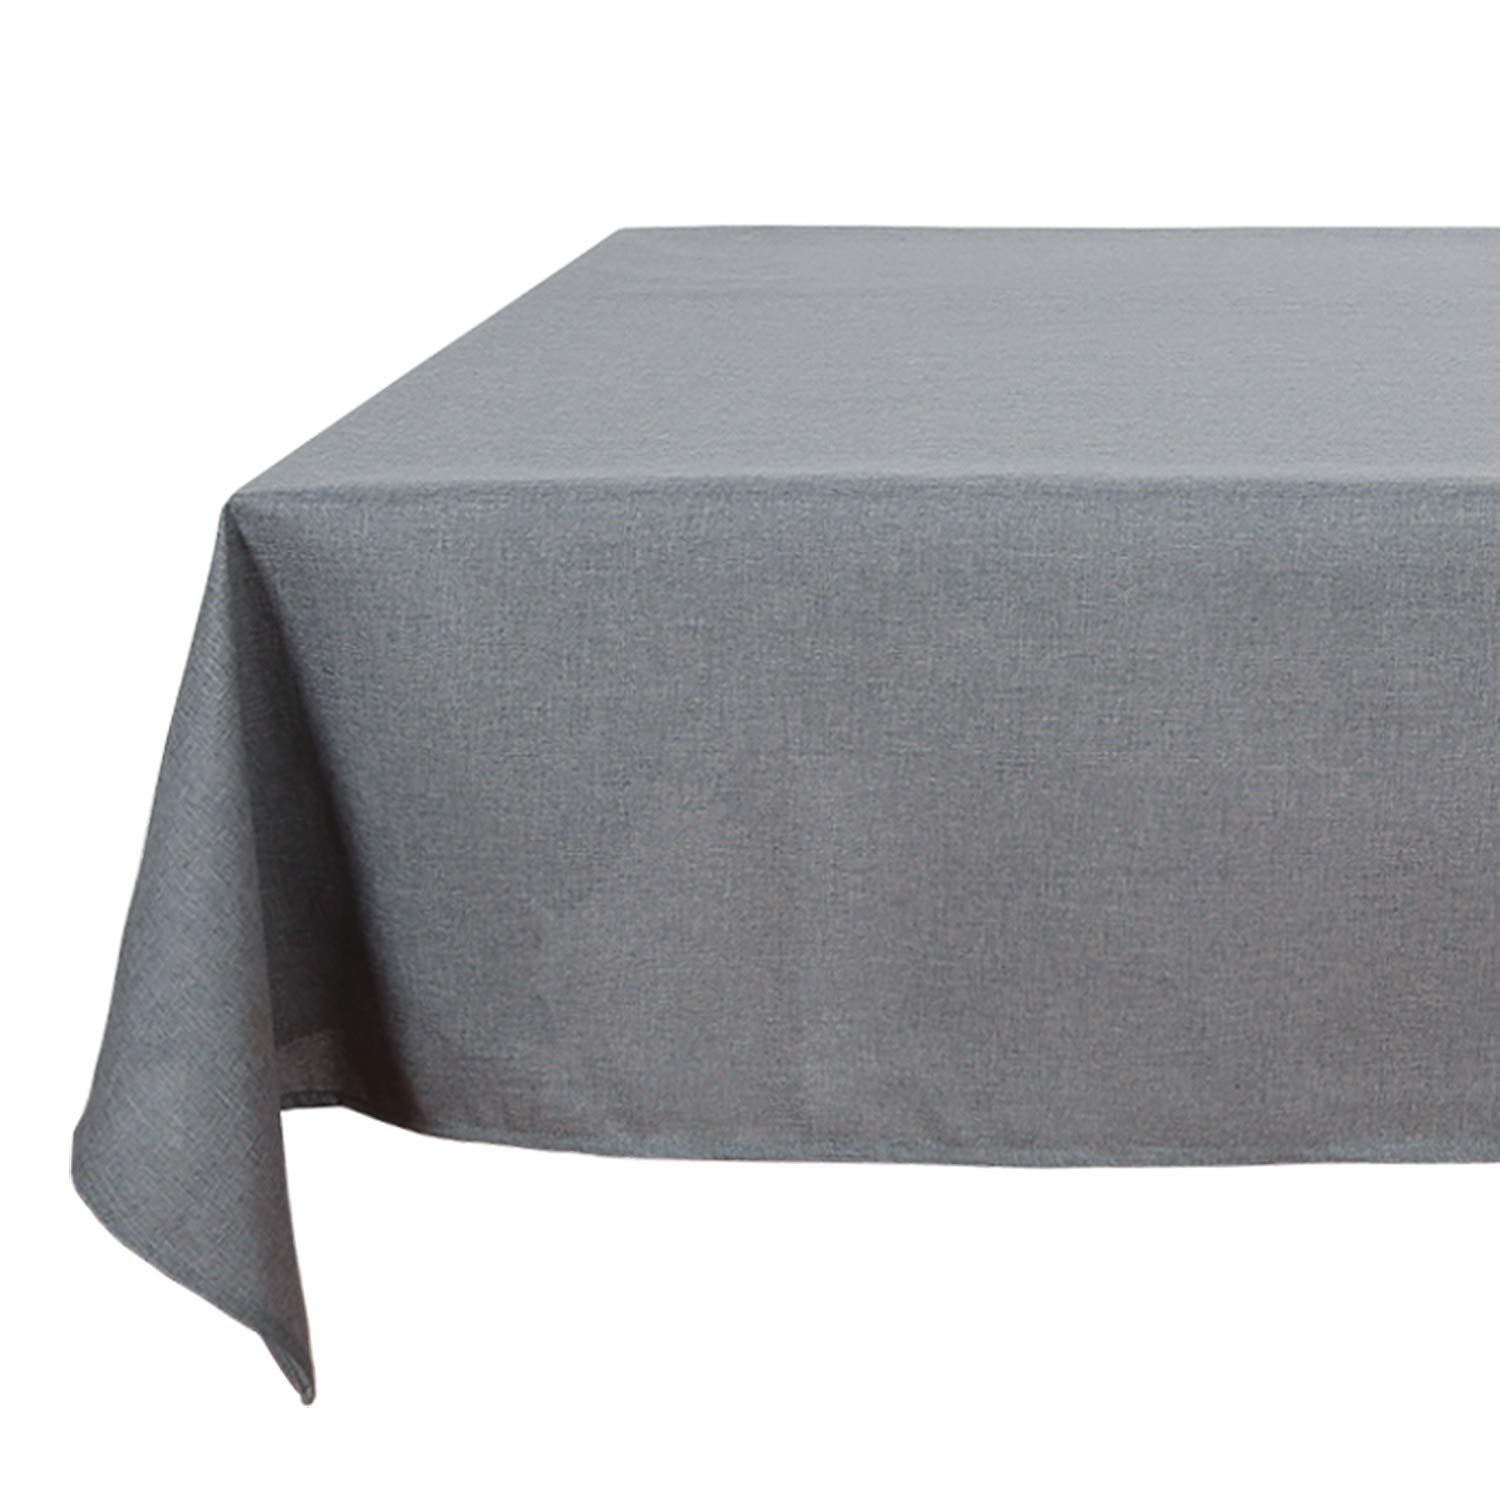 225 & Deconovo Modern Style Spillproof Table Cover Faux Linen Table Cloth for Picnic 54x54 Inch Grey